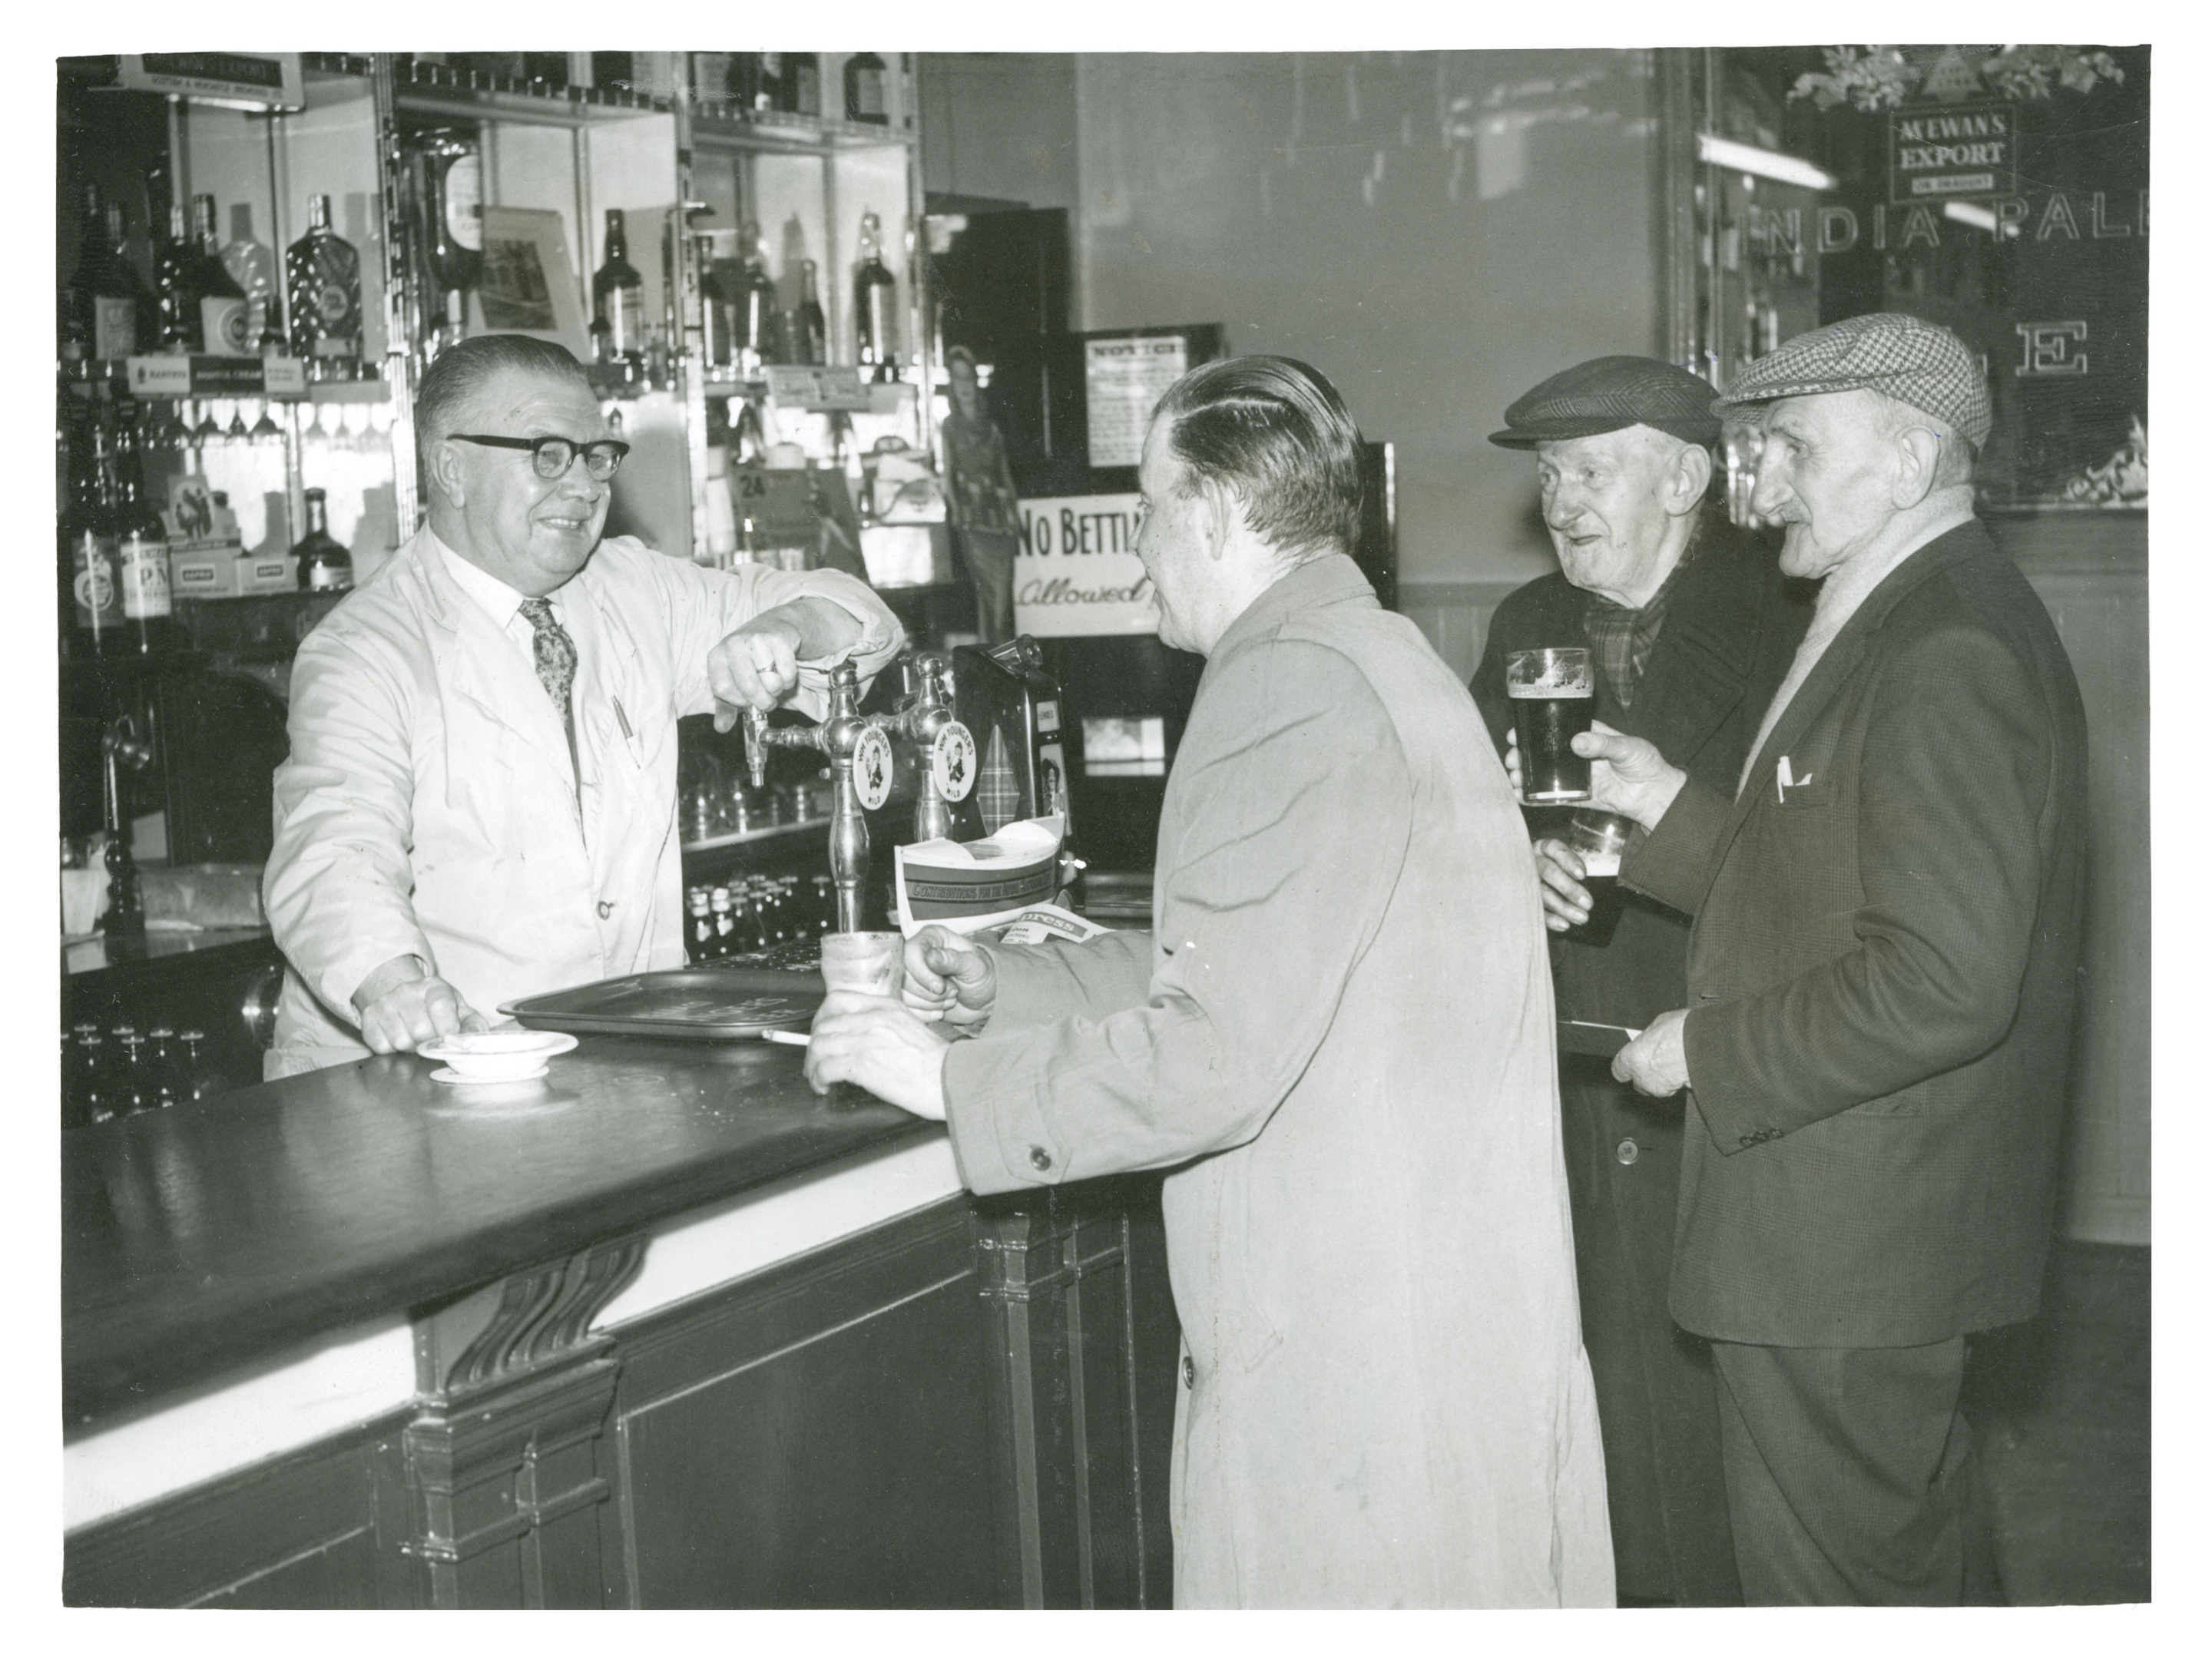 A working life behind the bar of one of Aberdeen's oldest pubs came to an end in 1965 for Tom Summers, who took over the Torry Bar in Old Torry in 1936. He is pictured here with customers after he announced his decision to retire.